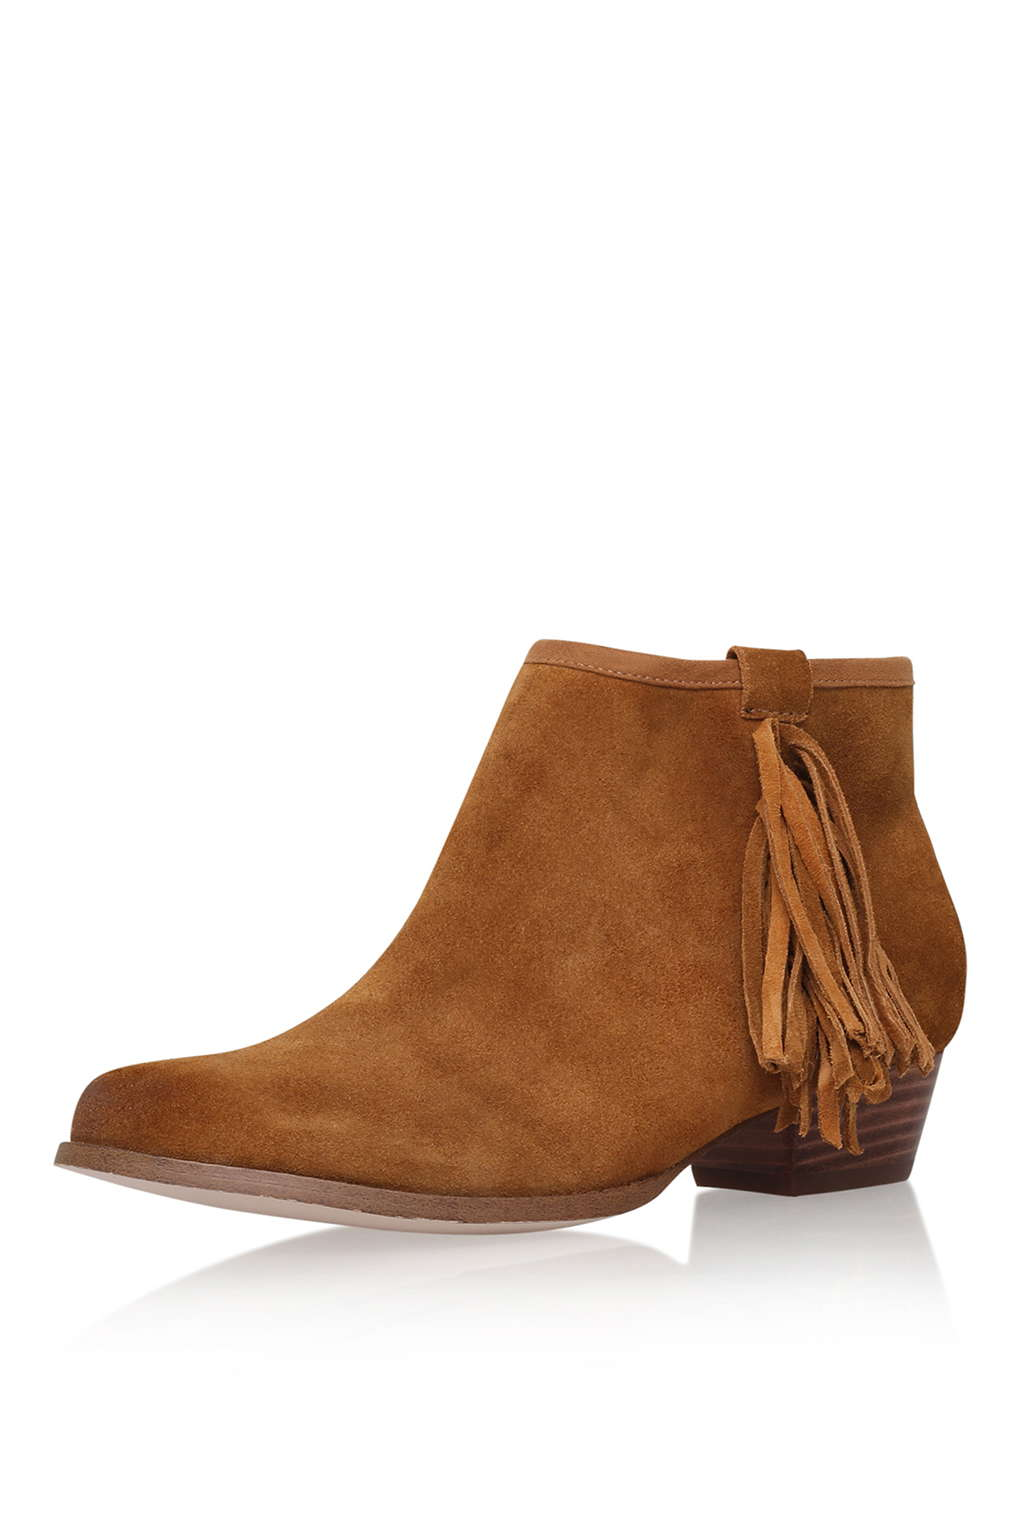 Bootie with fringe; Topshop